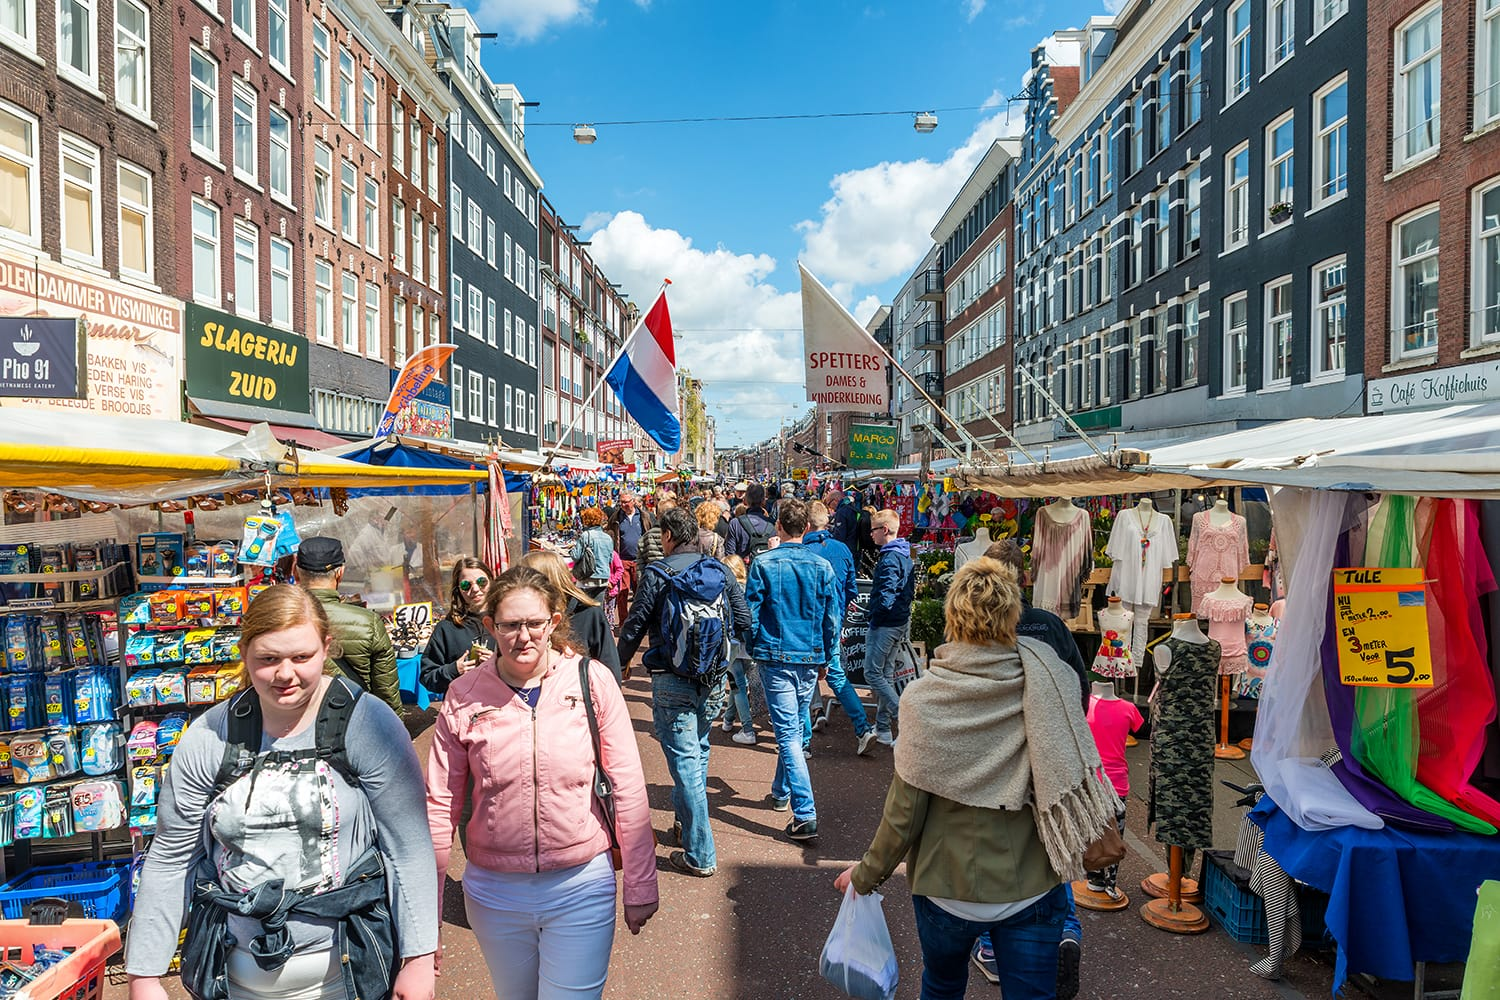 Tourists walk in Albert Cuyp Market. Albert Cuyp Market is one of sights of the city in Amsterdam, Netherlands